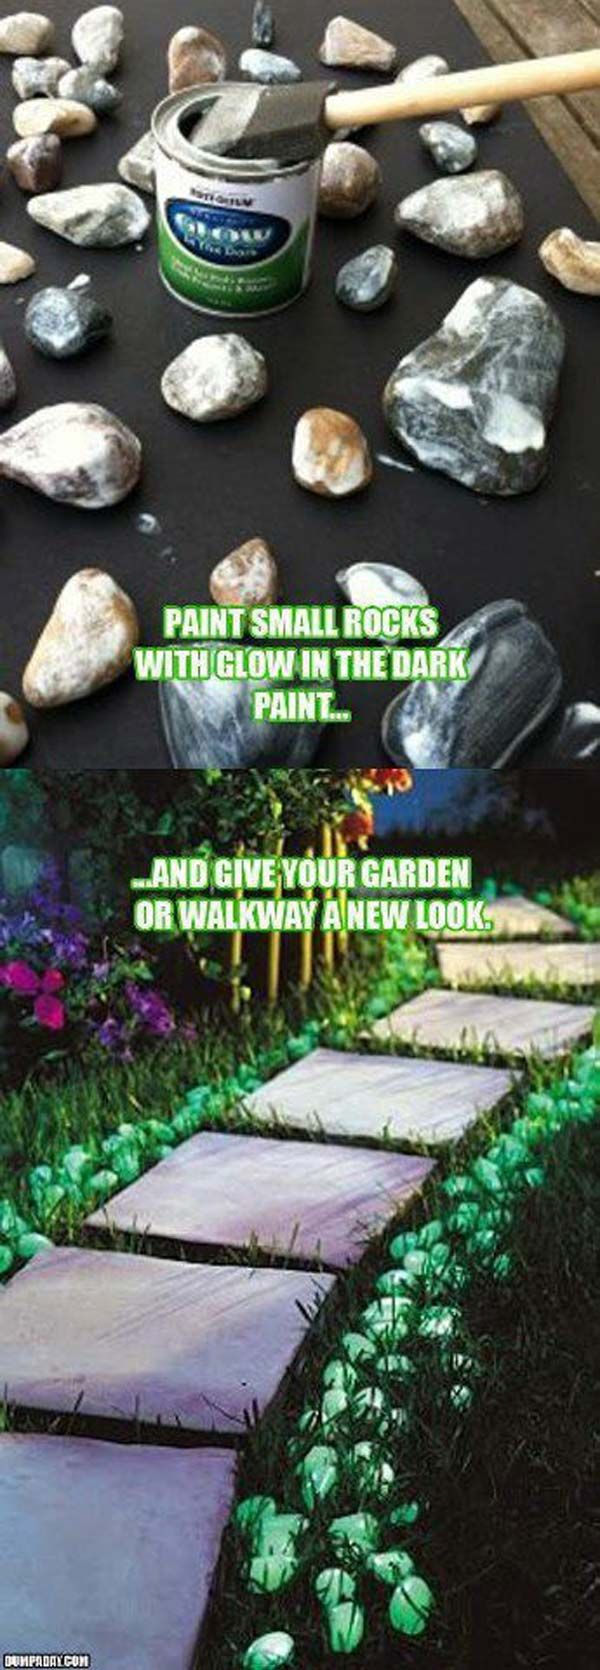 Paint small rocks with glow in the dark paint. - 26 Fabulous Garden ...